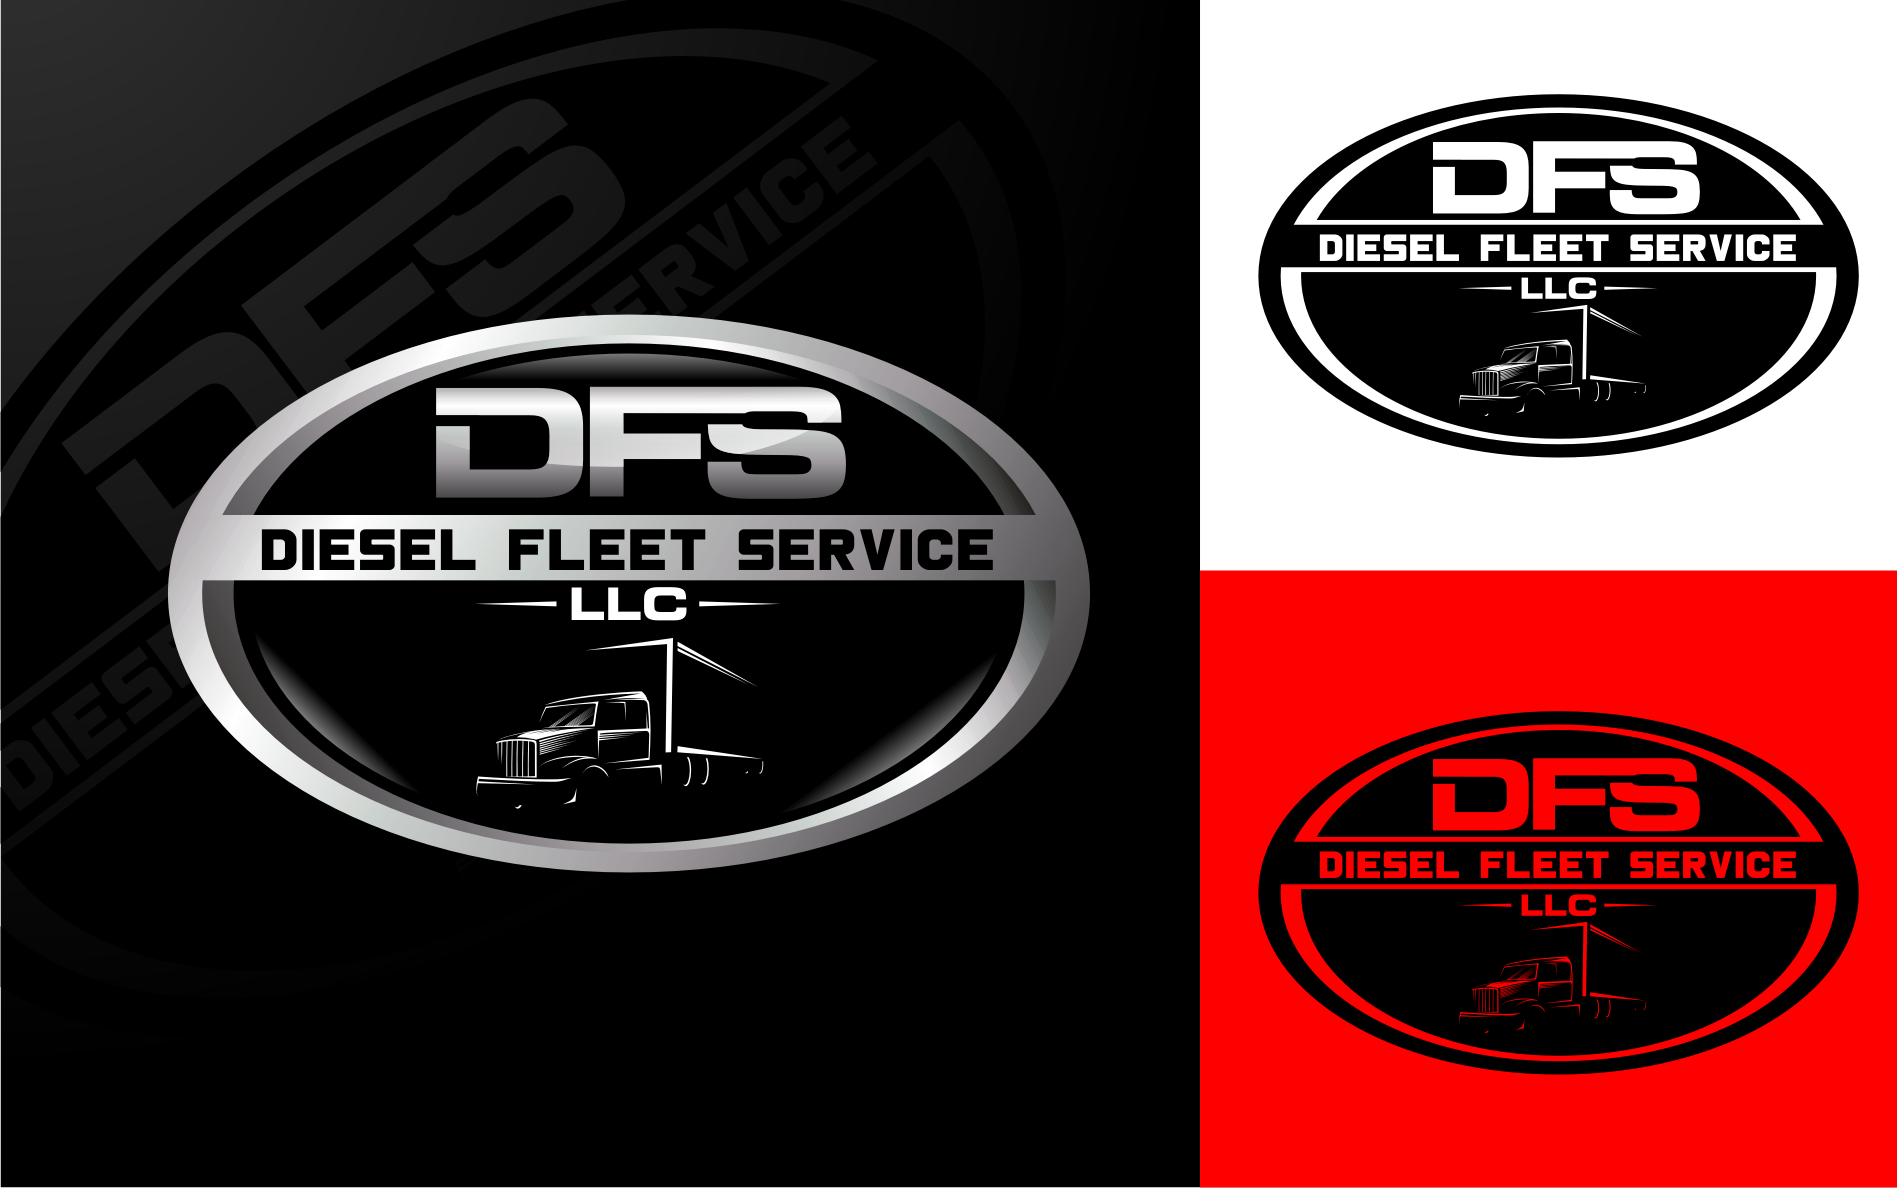 Logo Design by Tille Famz - Entry No. 82 in the Logo Design Contest Artistic Logo Design for Diesel Fleet Service, LLC.